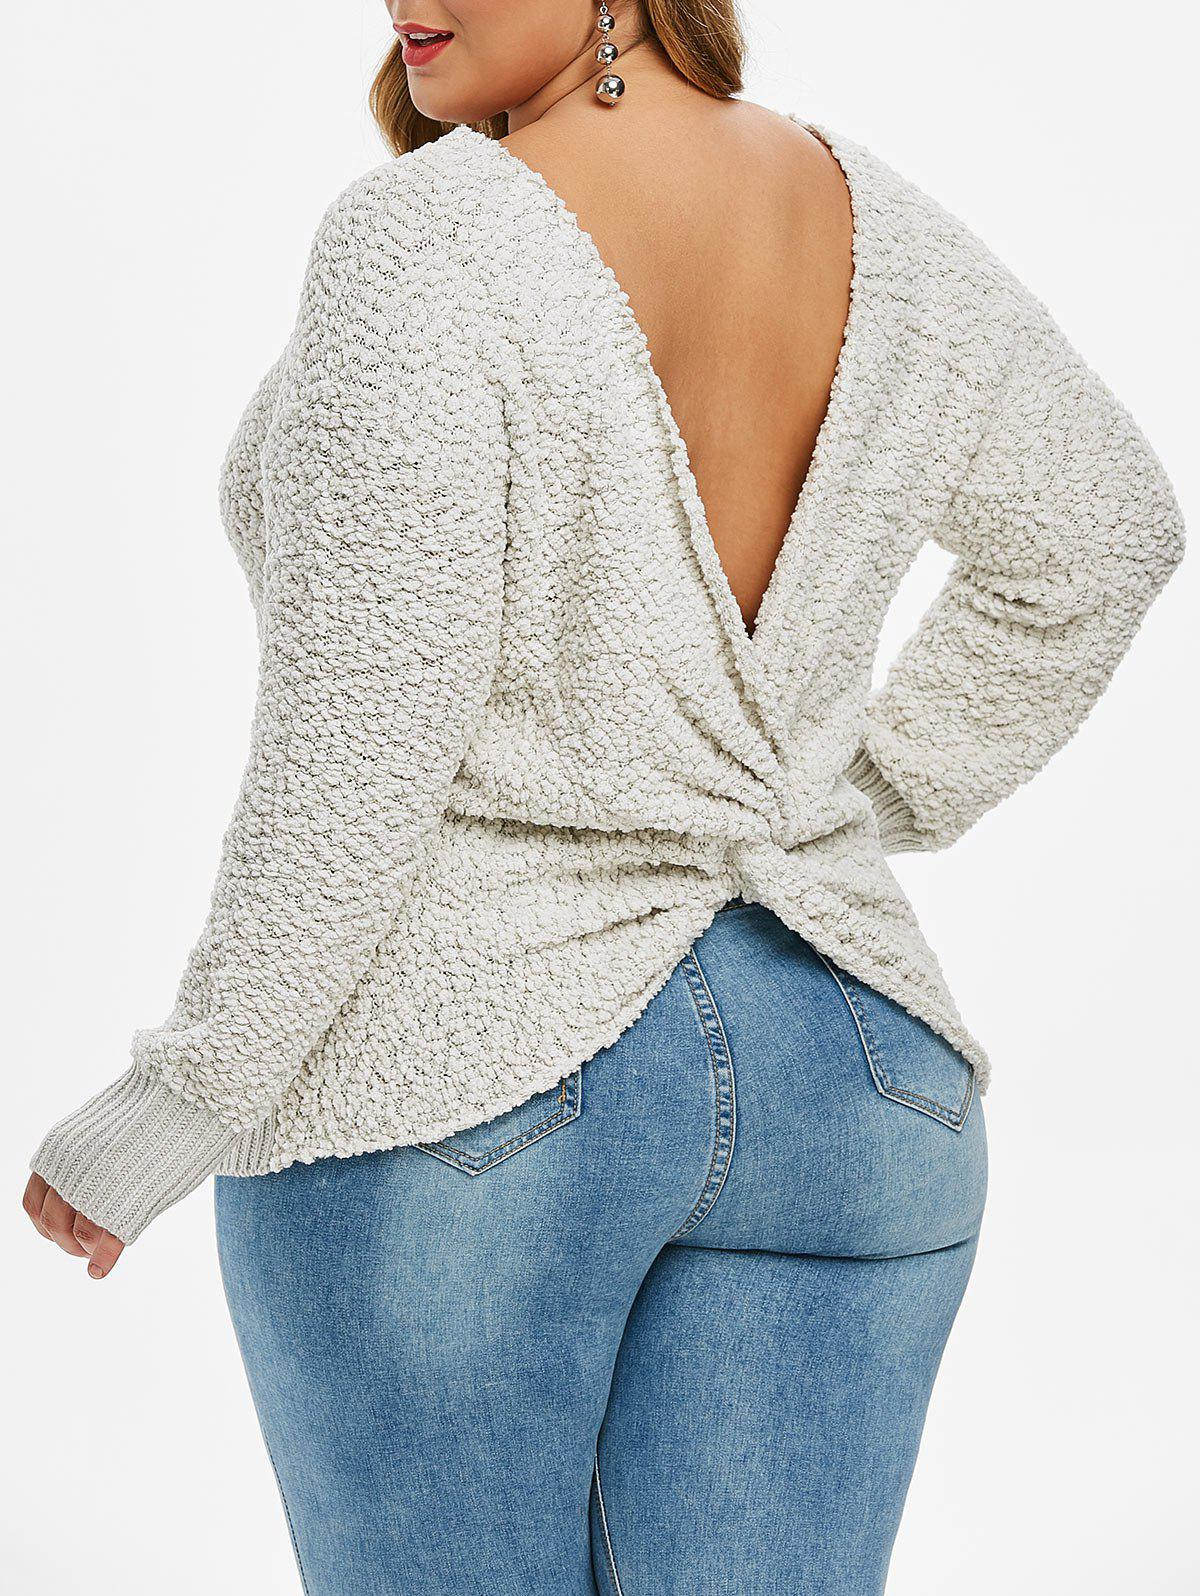 Faux Shearling Twisted Back Pullover Plus Size Sweater - GRAY M